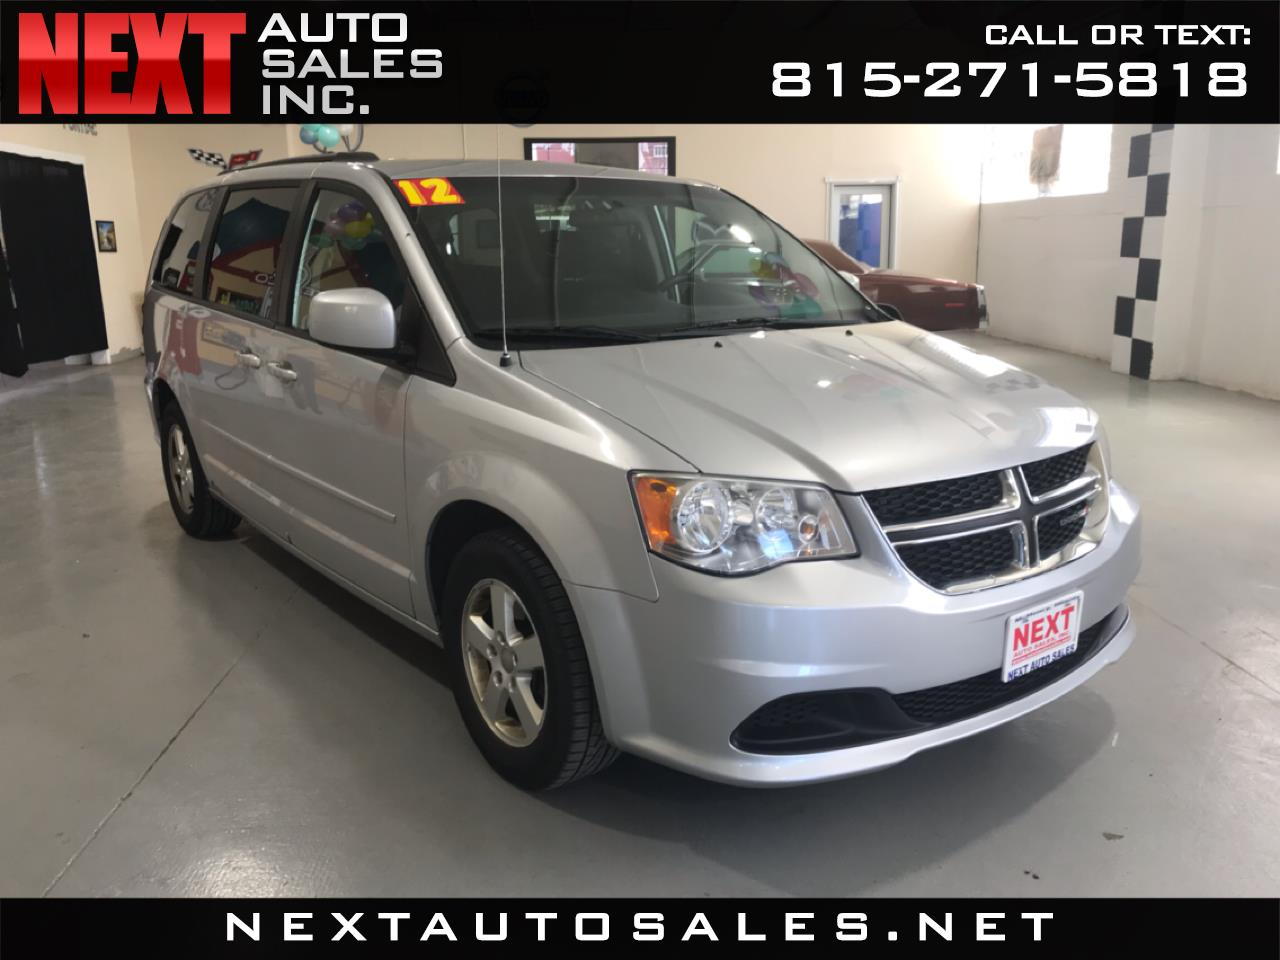 2012 Dodge Grand Caravan 4dr Wgn SXT